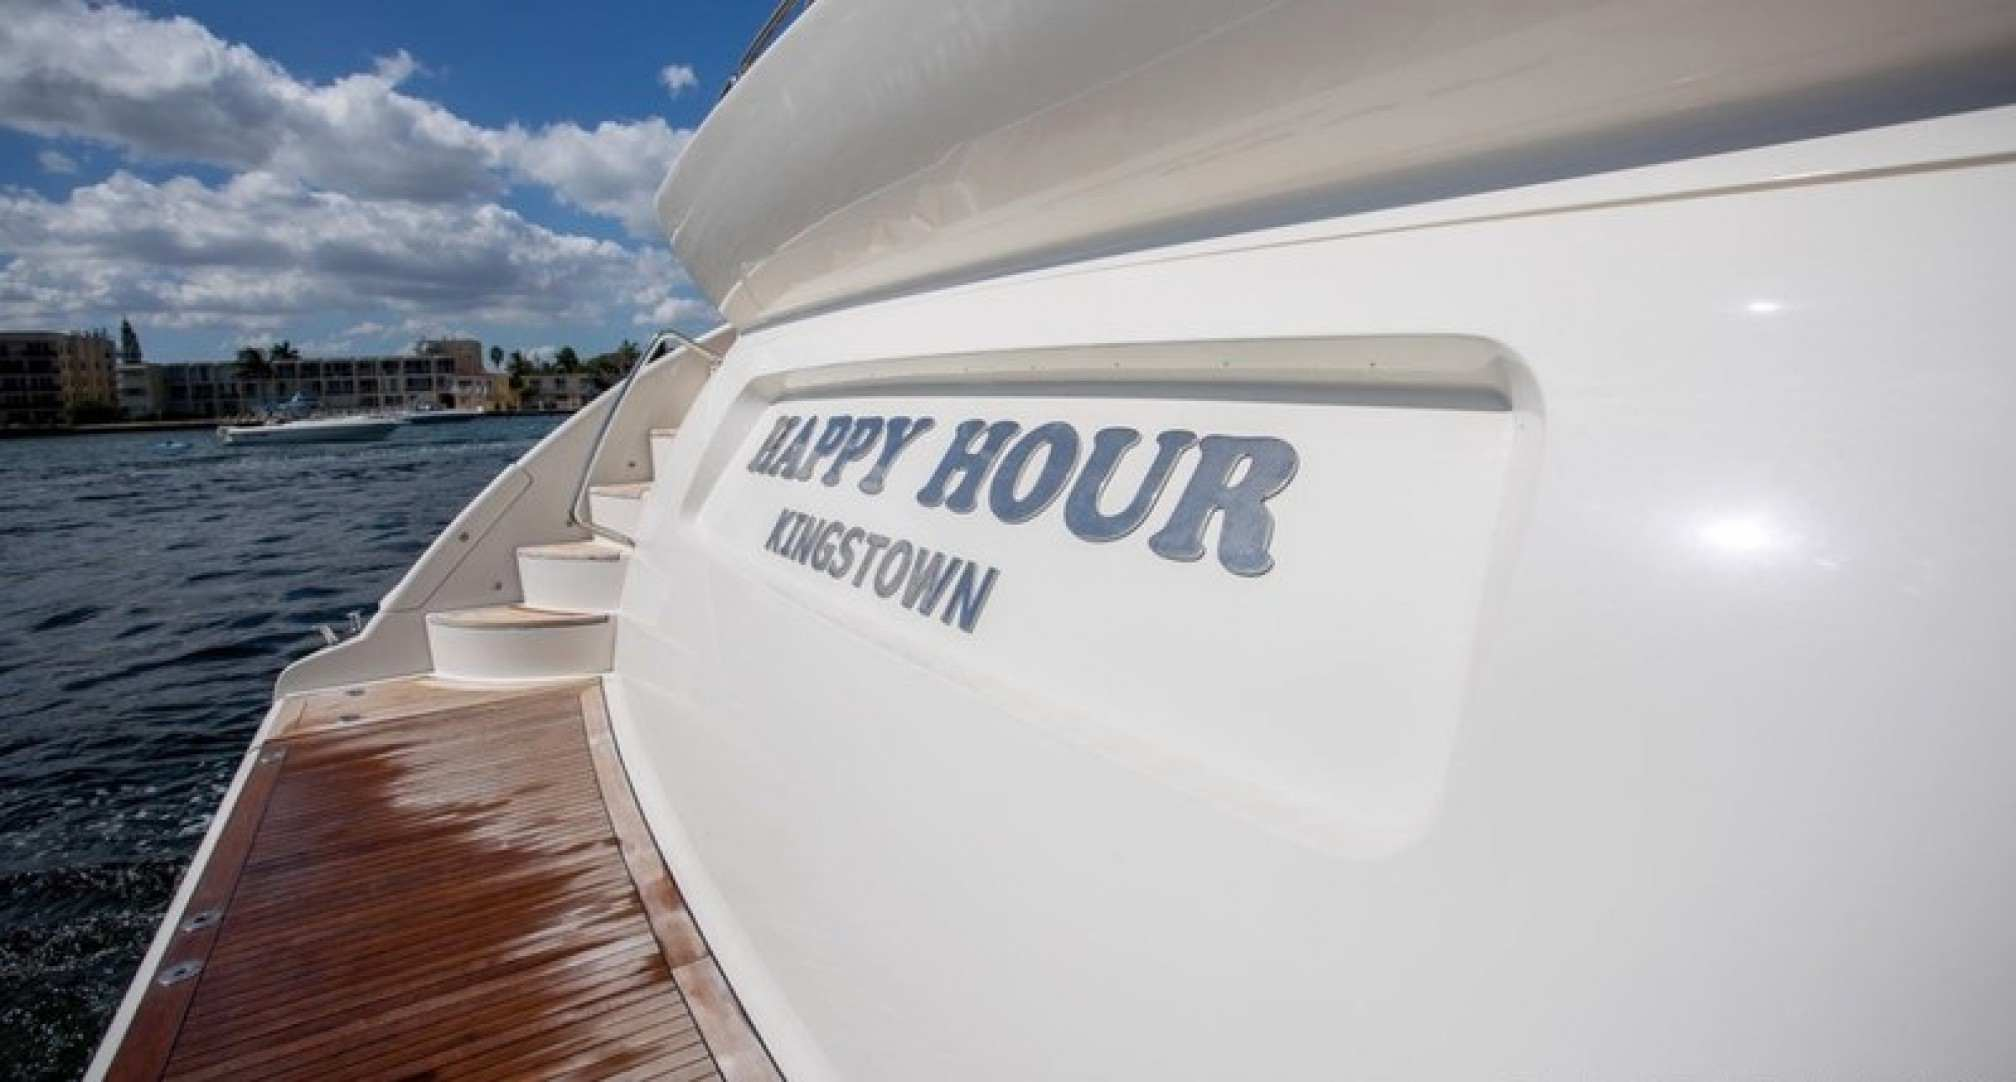 Happy Hour yacht charter bow